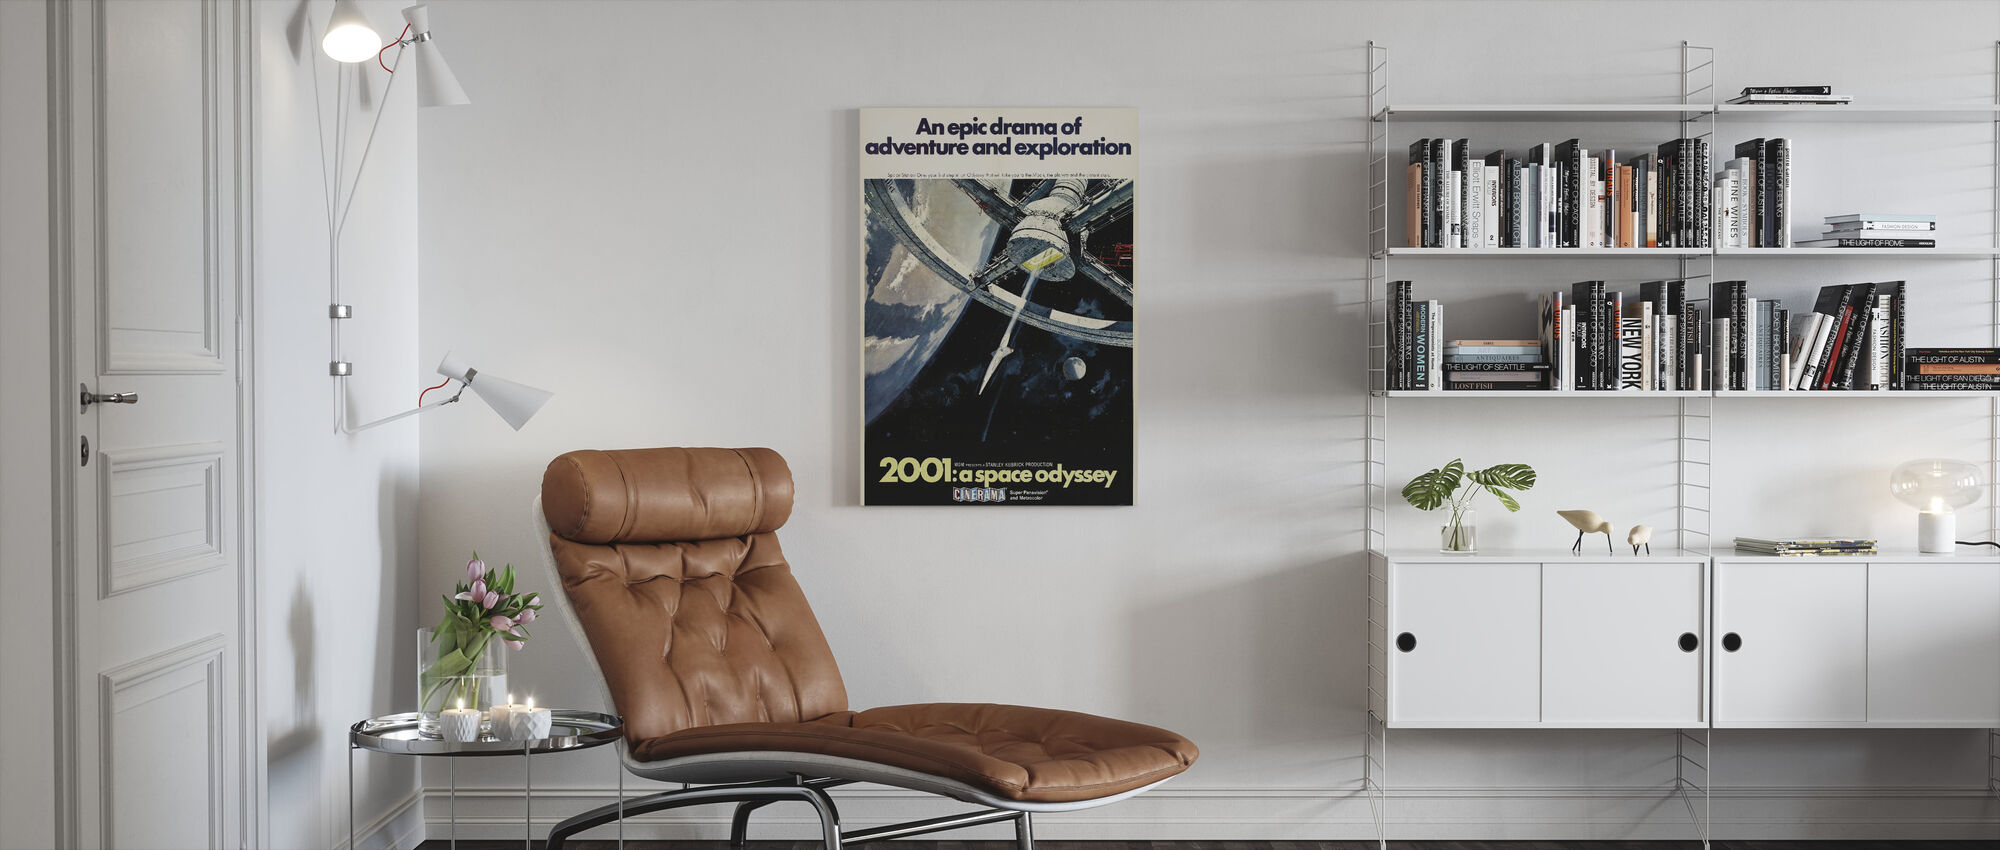 2001 A Space Odyssey - Canvas print - Living Room